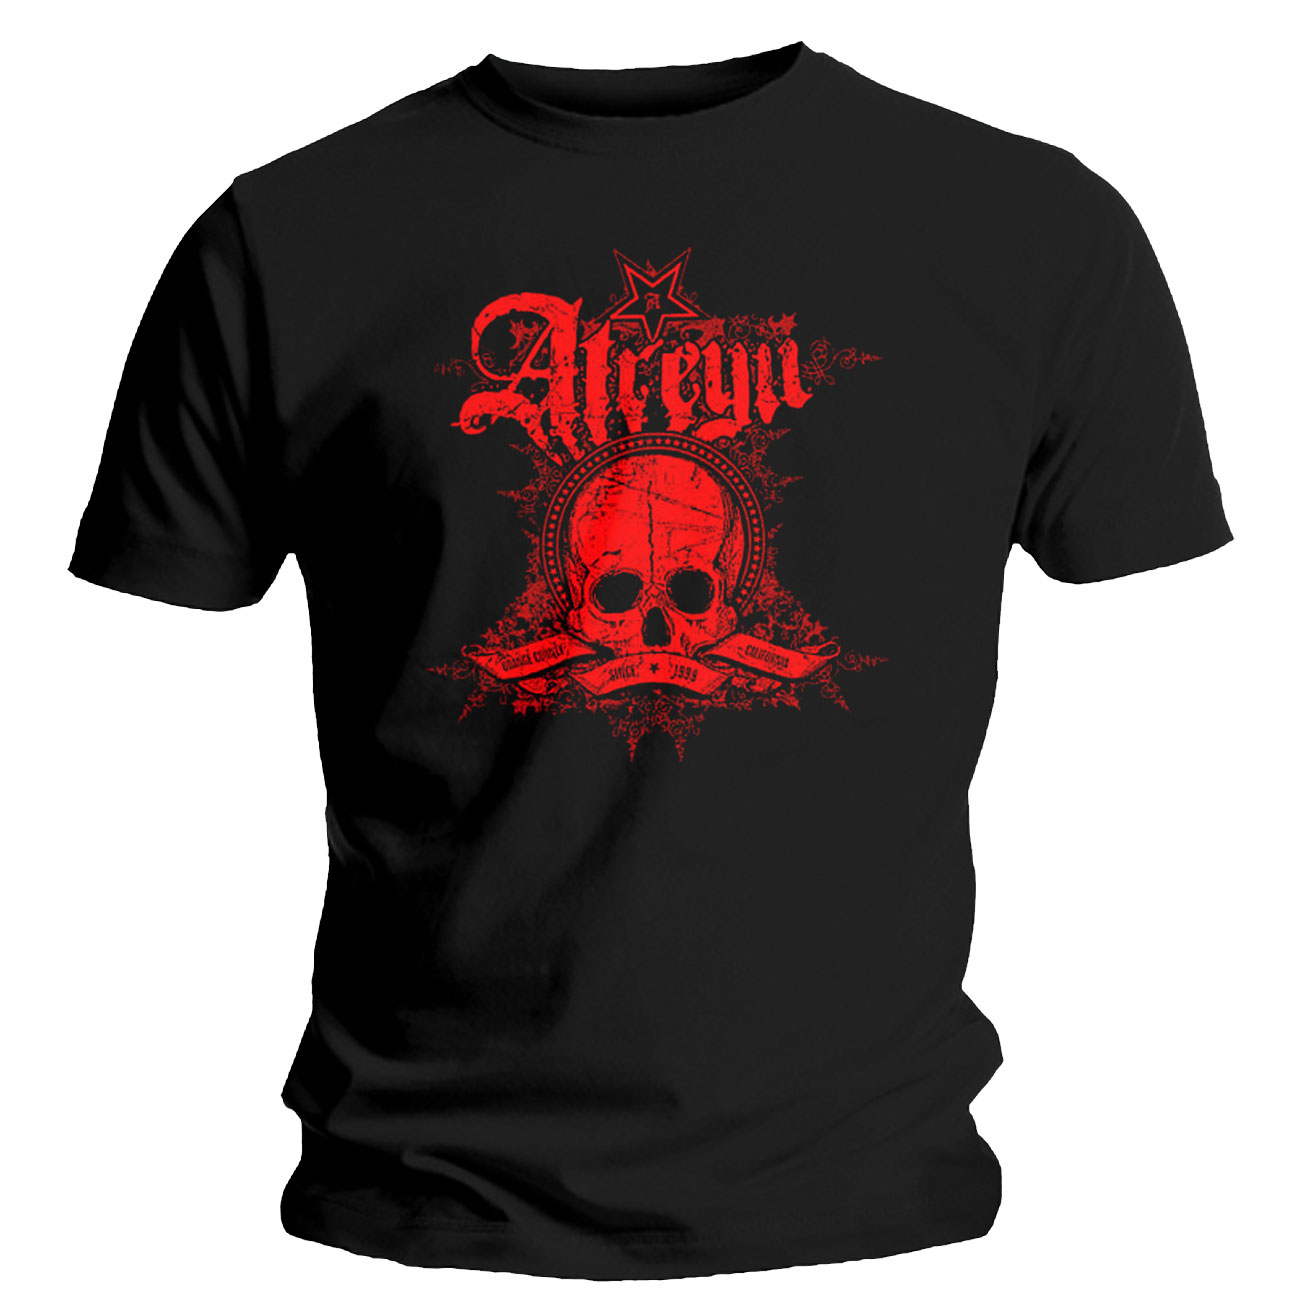 Atreyu T Shirt Skully. Emi Music officially licensed t-shirt.